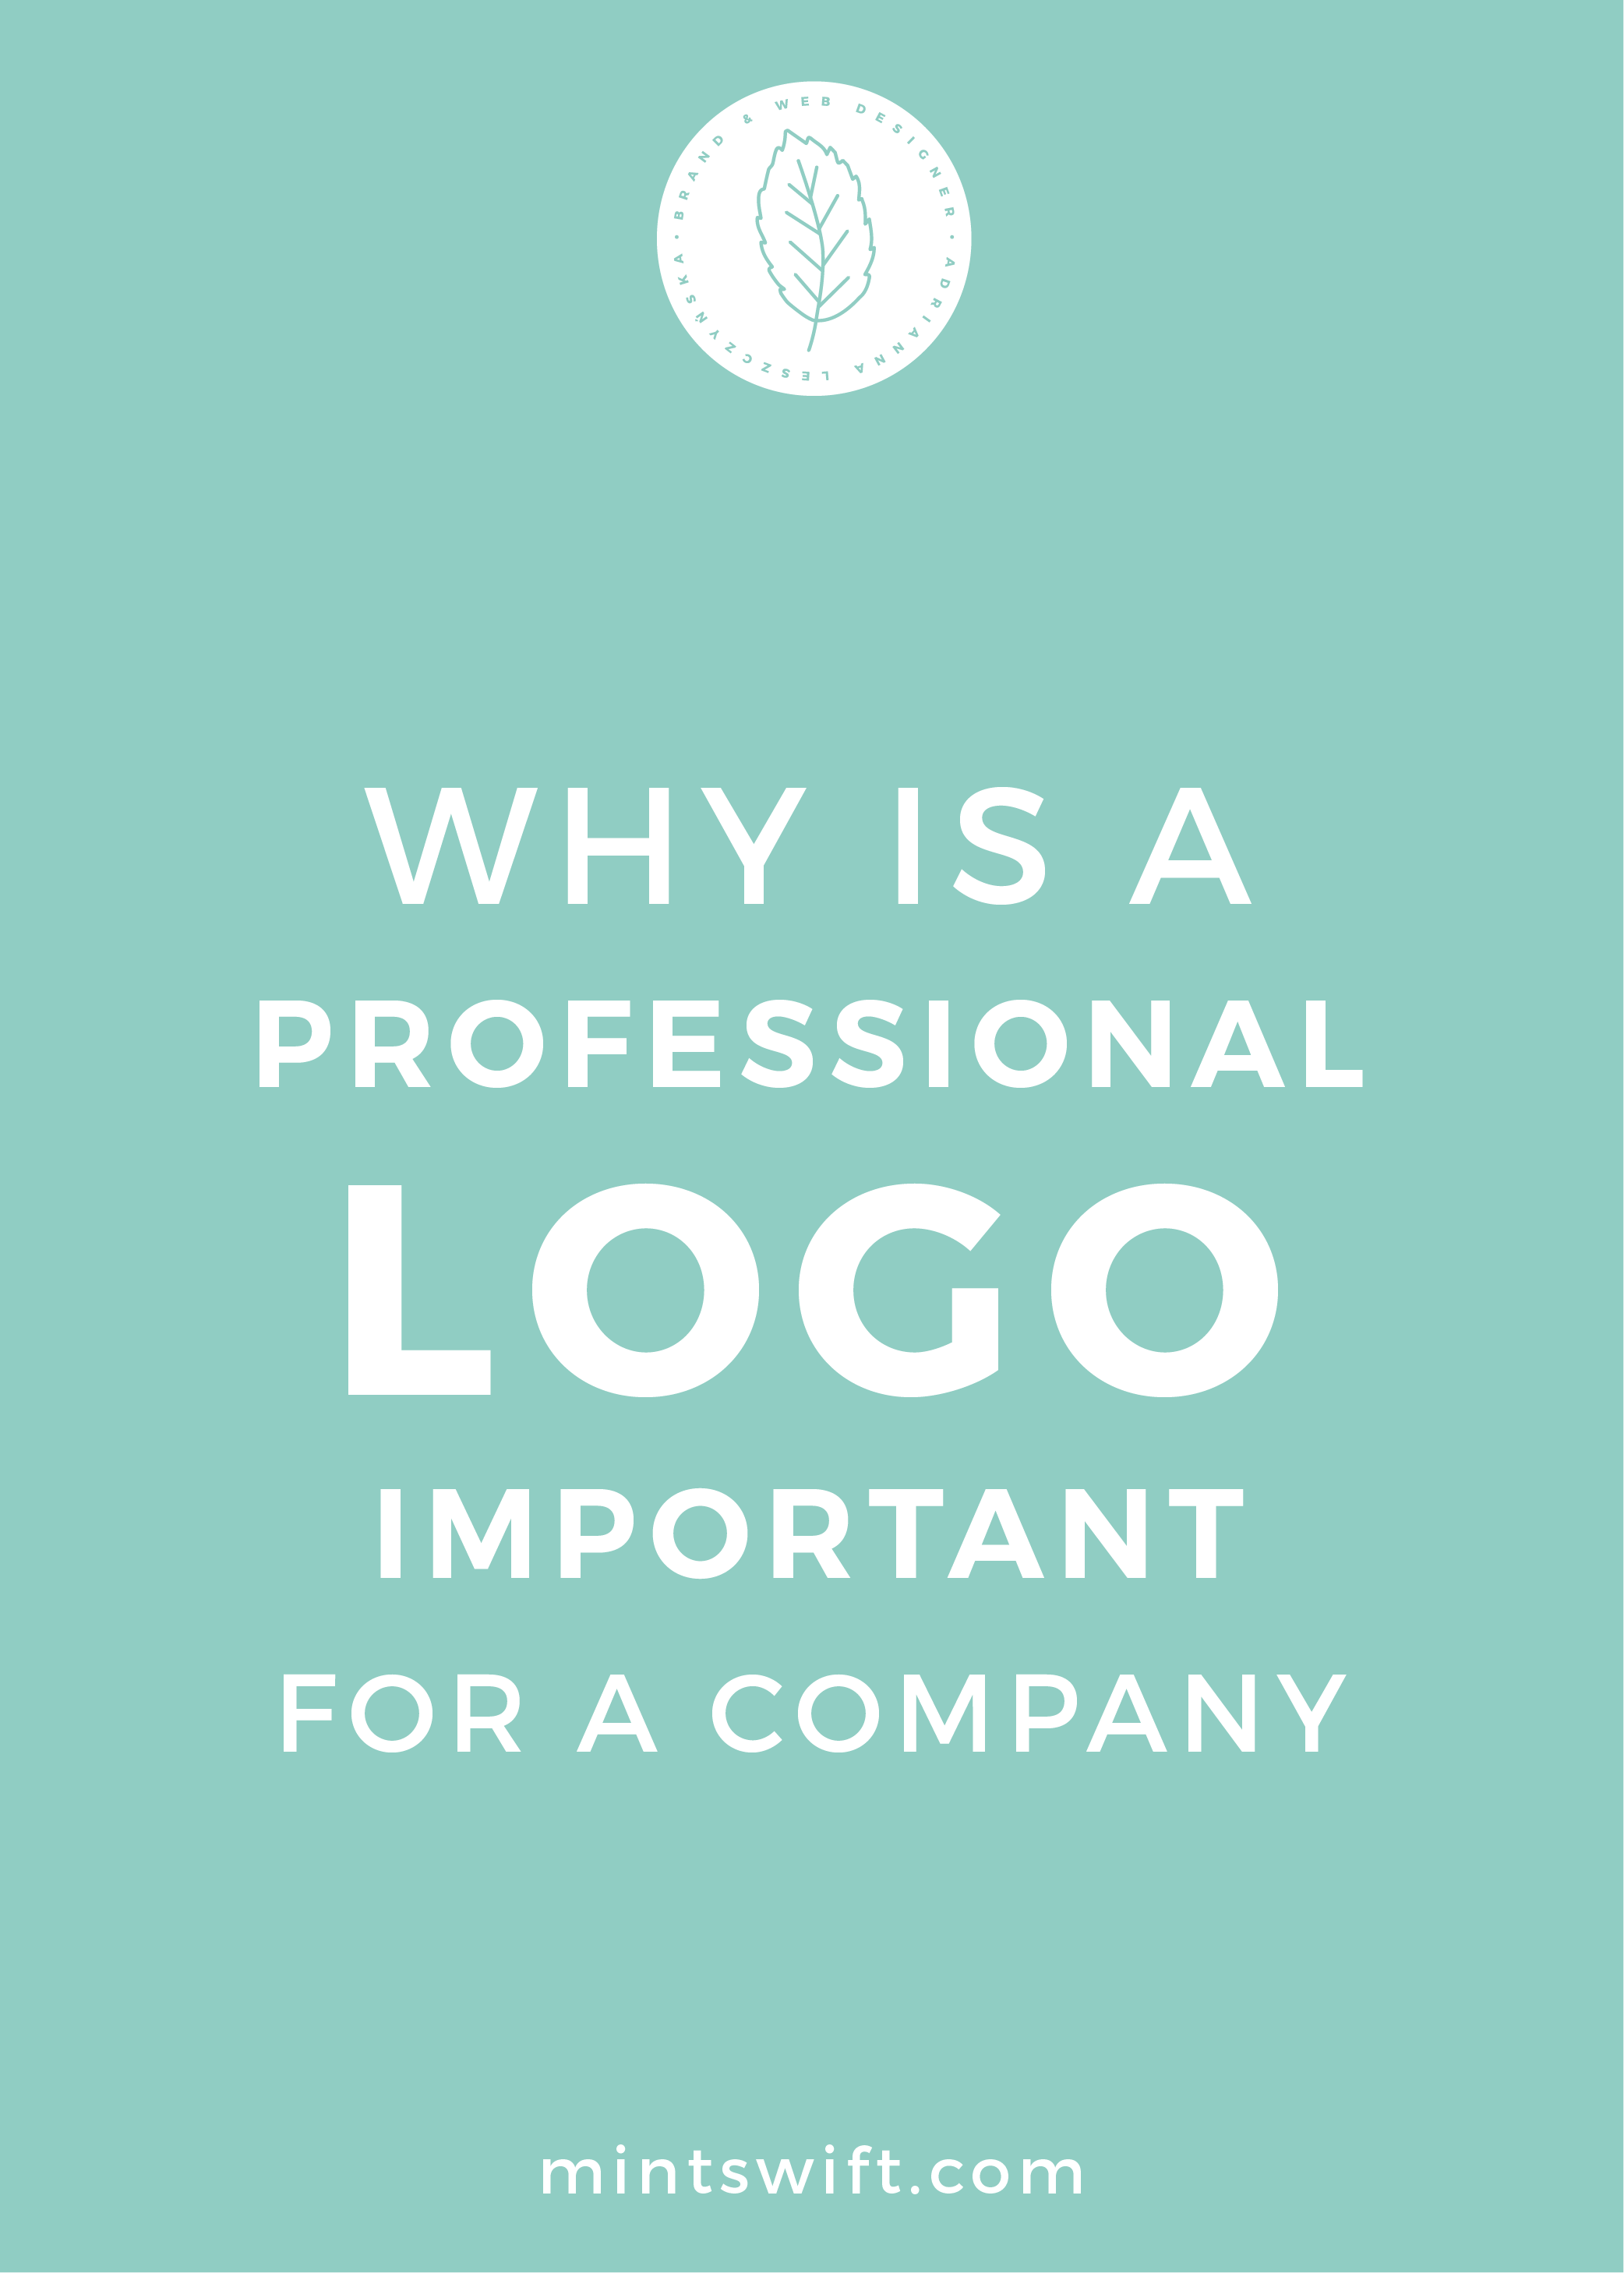 Why a professional logo is important for a company - MintSwift